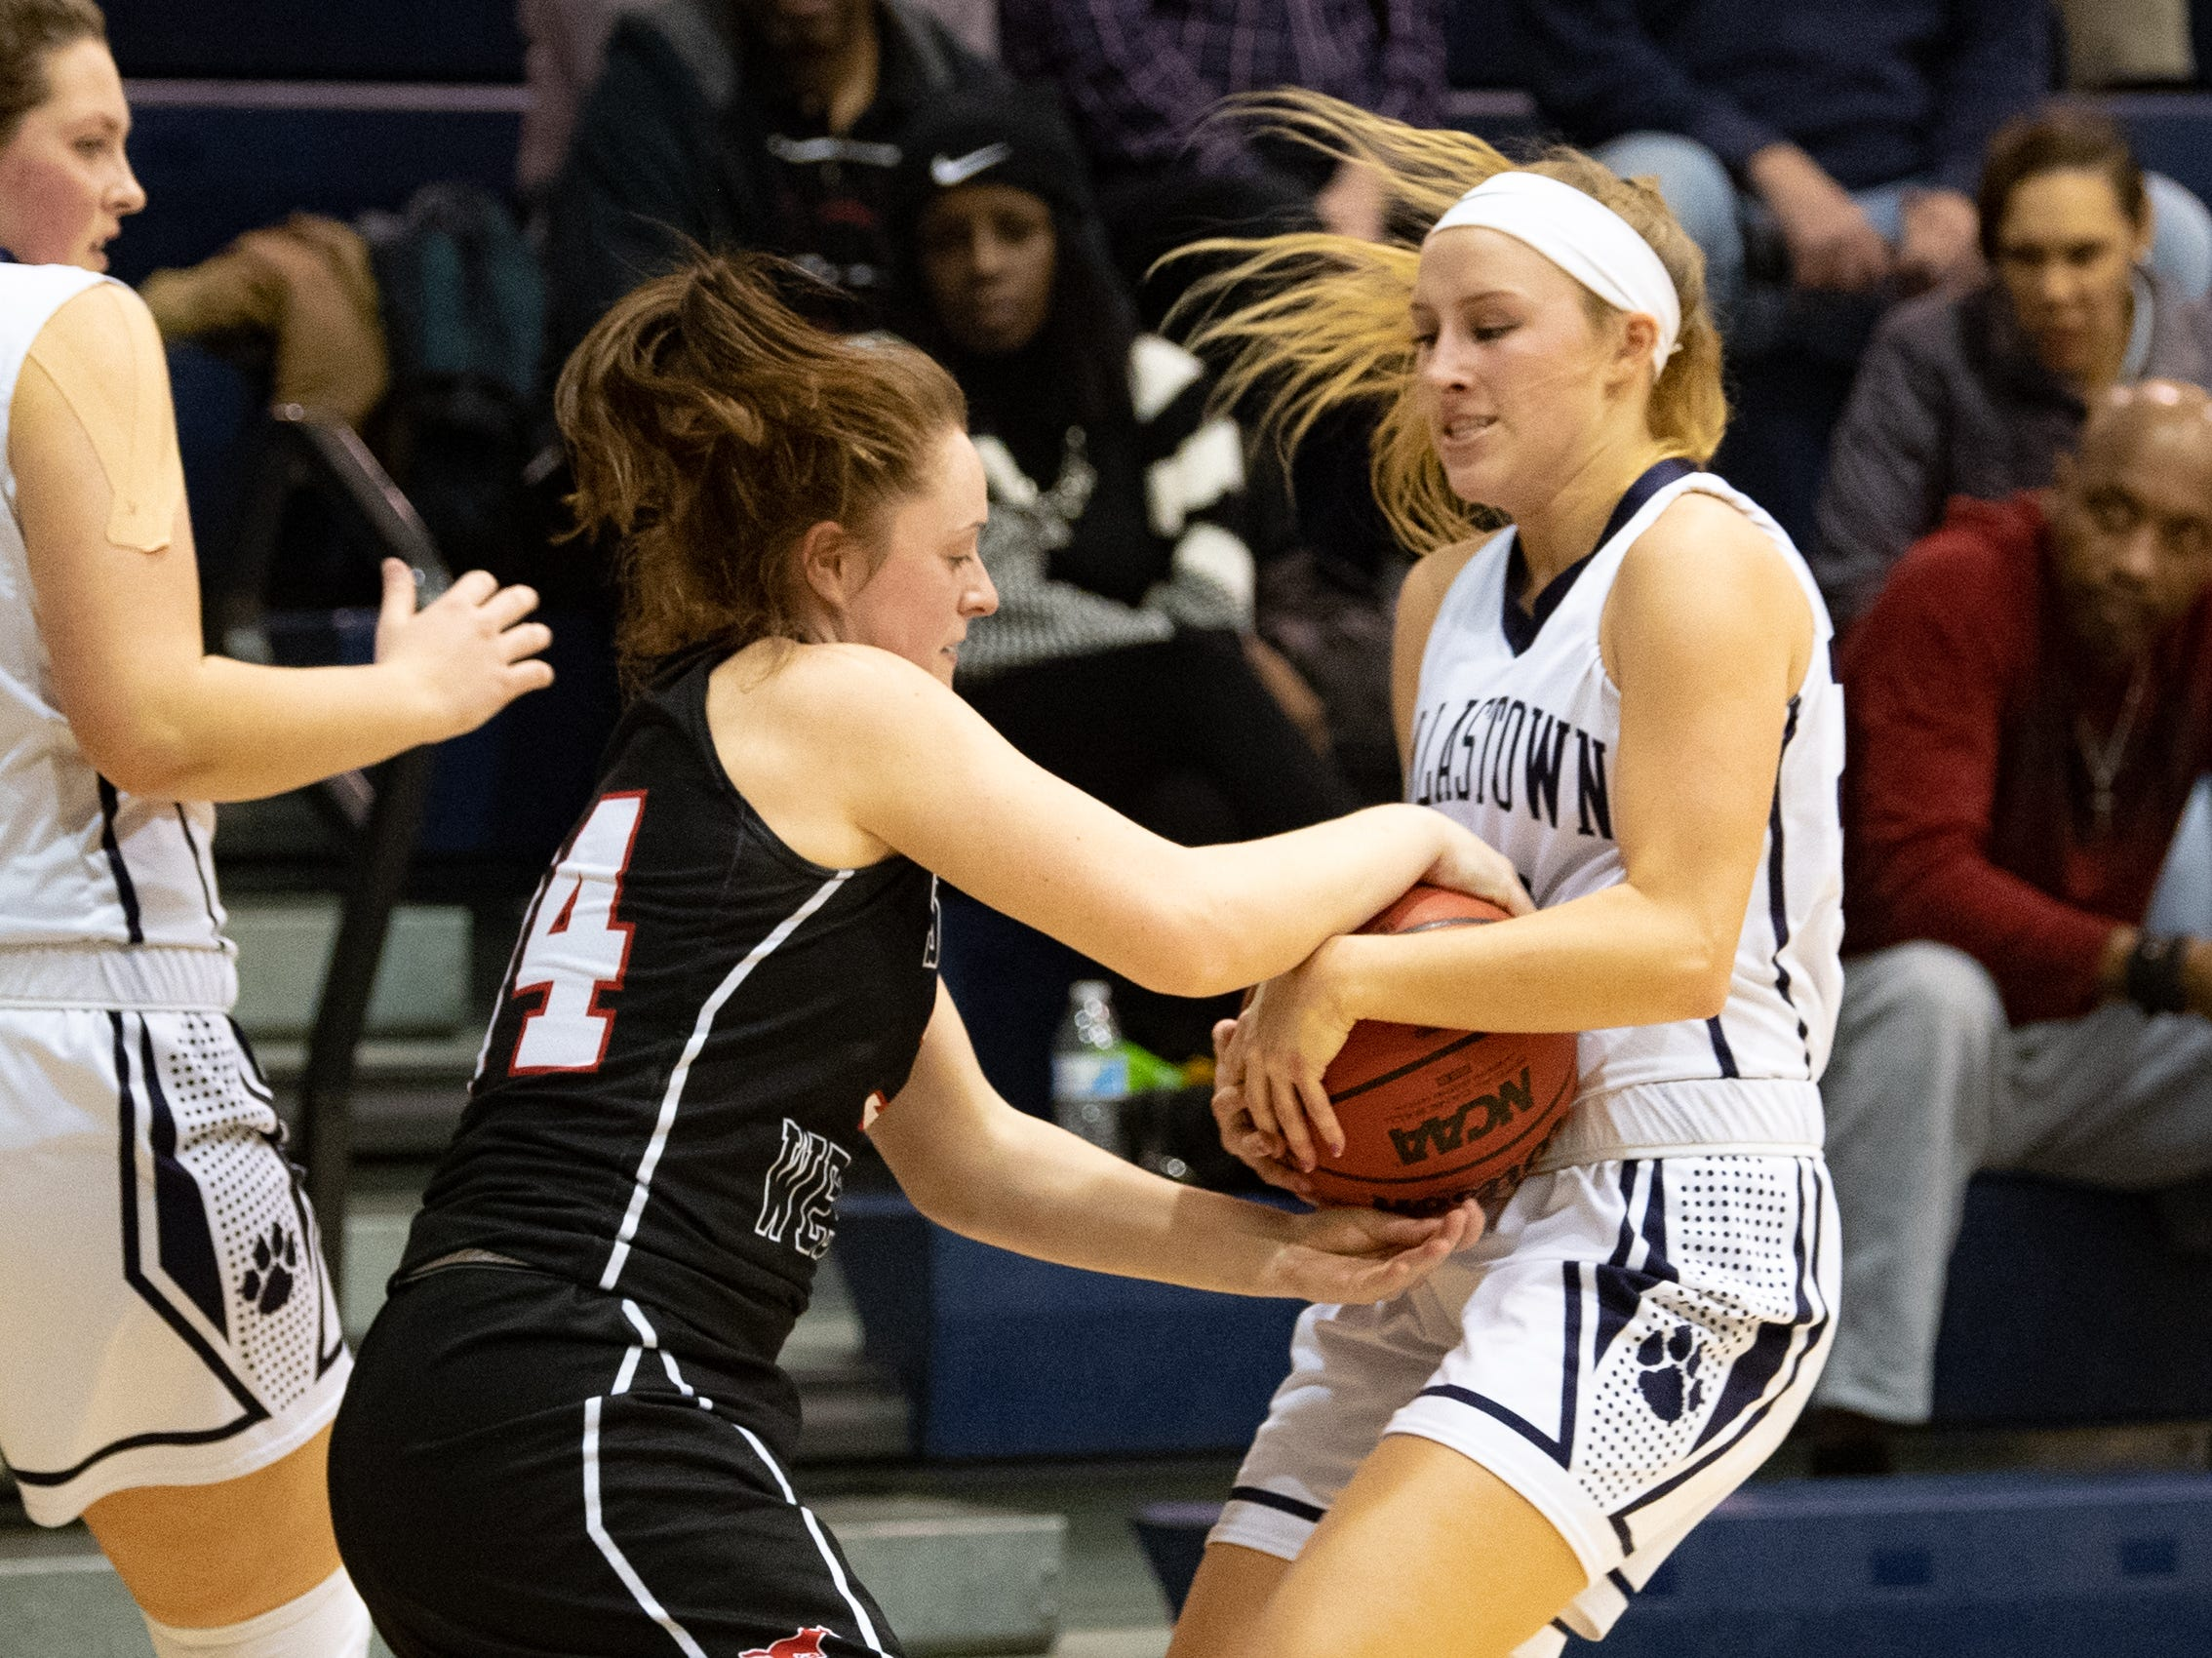 Maddy McMaster (34) of South Western and Lily Jamison (20) of Dallastown wrestle for the ball during the YAIAA girls' basketball game, Tuesday, January 22, 2019. The Wildcats defeated the Mustangs 38-35.